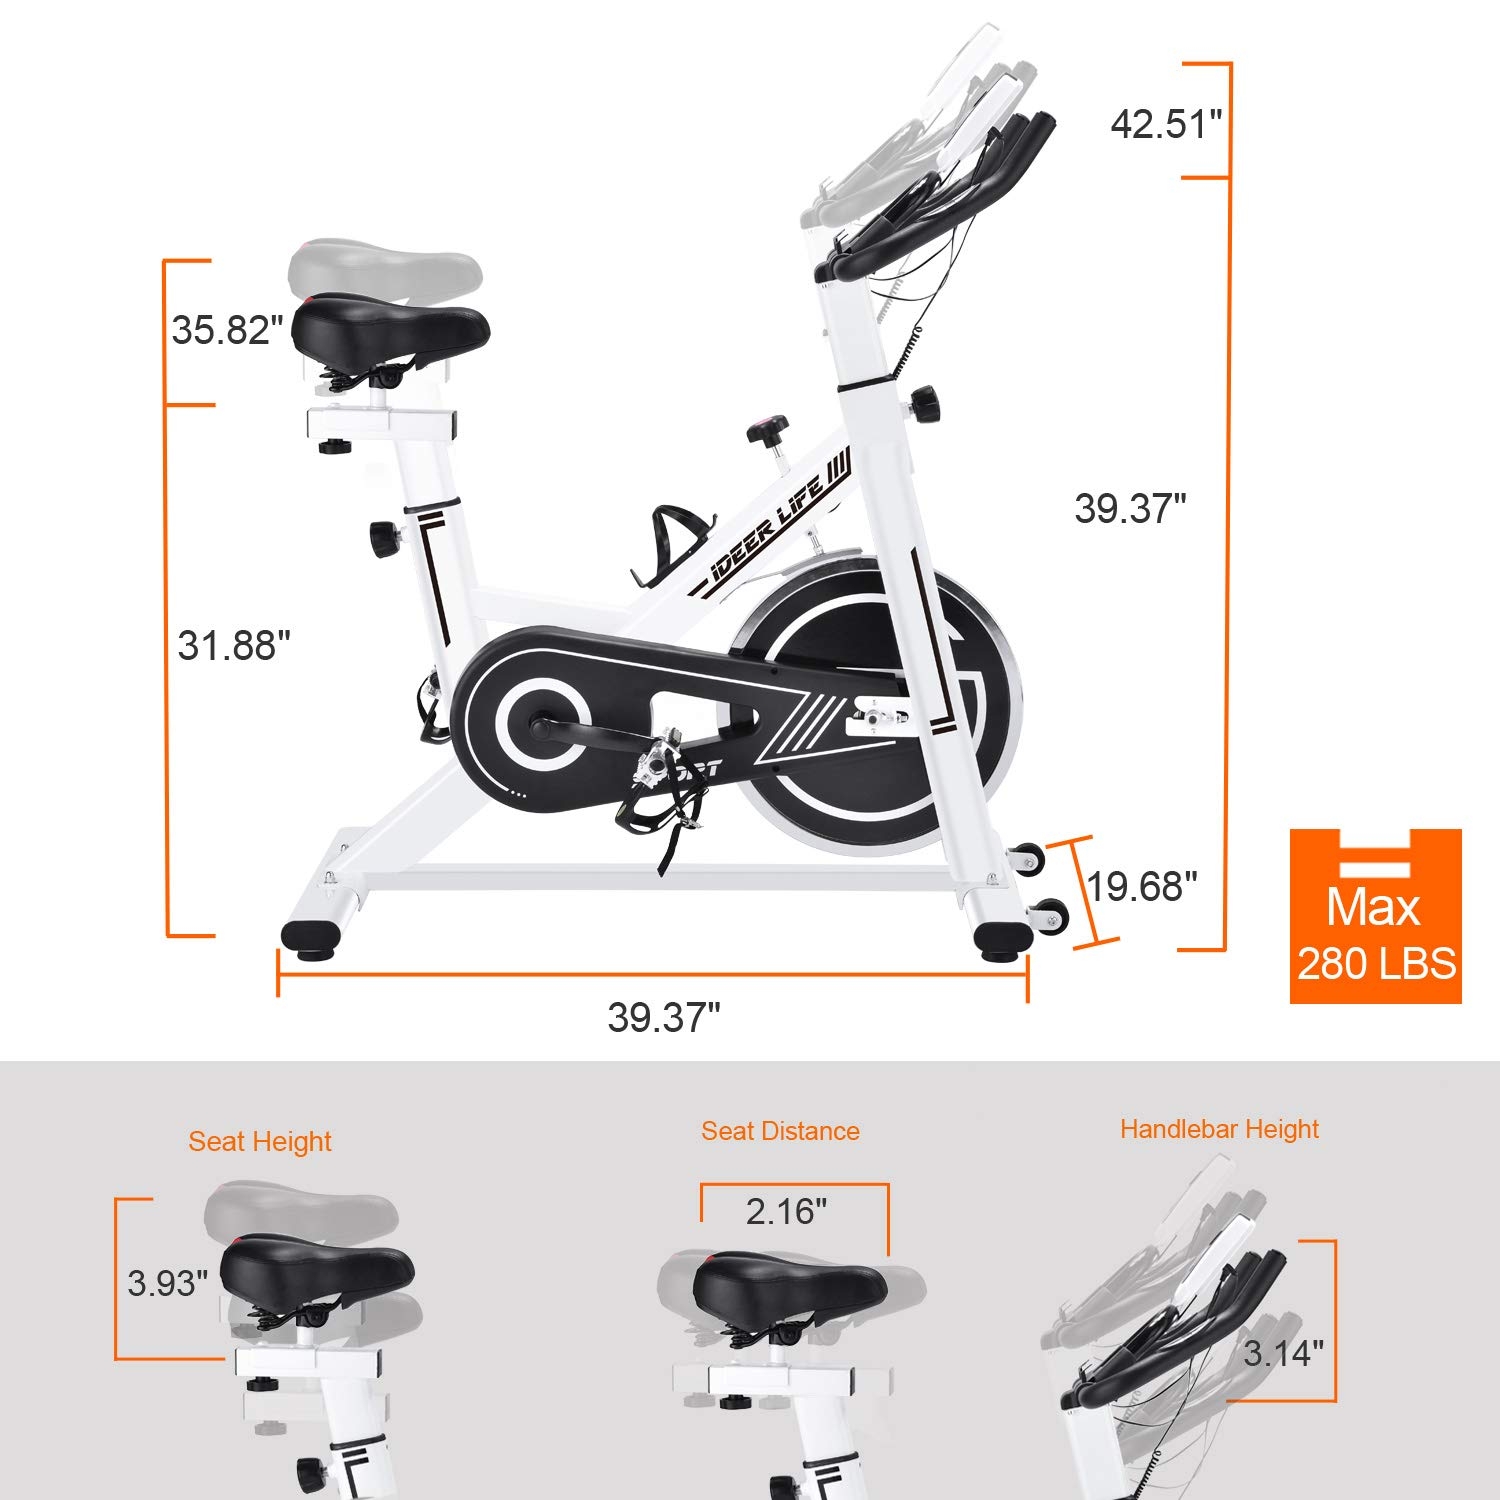 IDEER LIFE Indoor Cycling Exercise Bike Stationary Bike for Home Sport Workout,Adjustable Sport Exercise Bike for Home Indoor Cardio,w Pulse Sensor LCD Monitor,Max Capacity 330lb